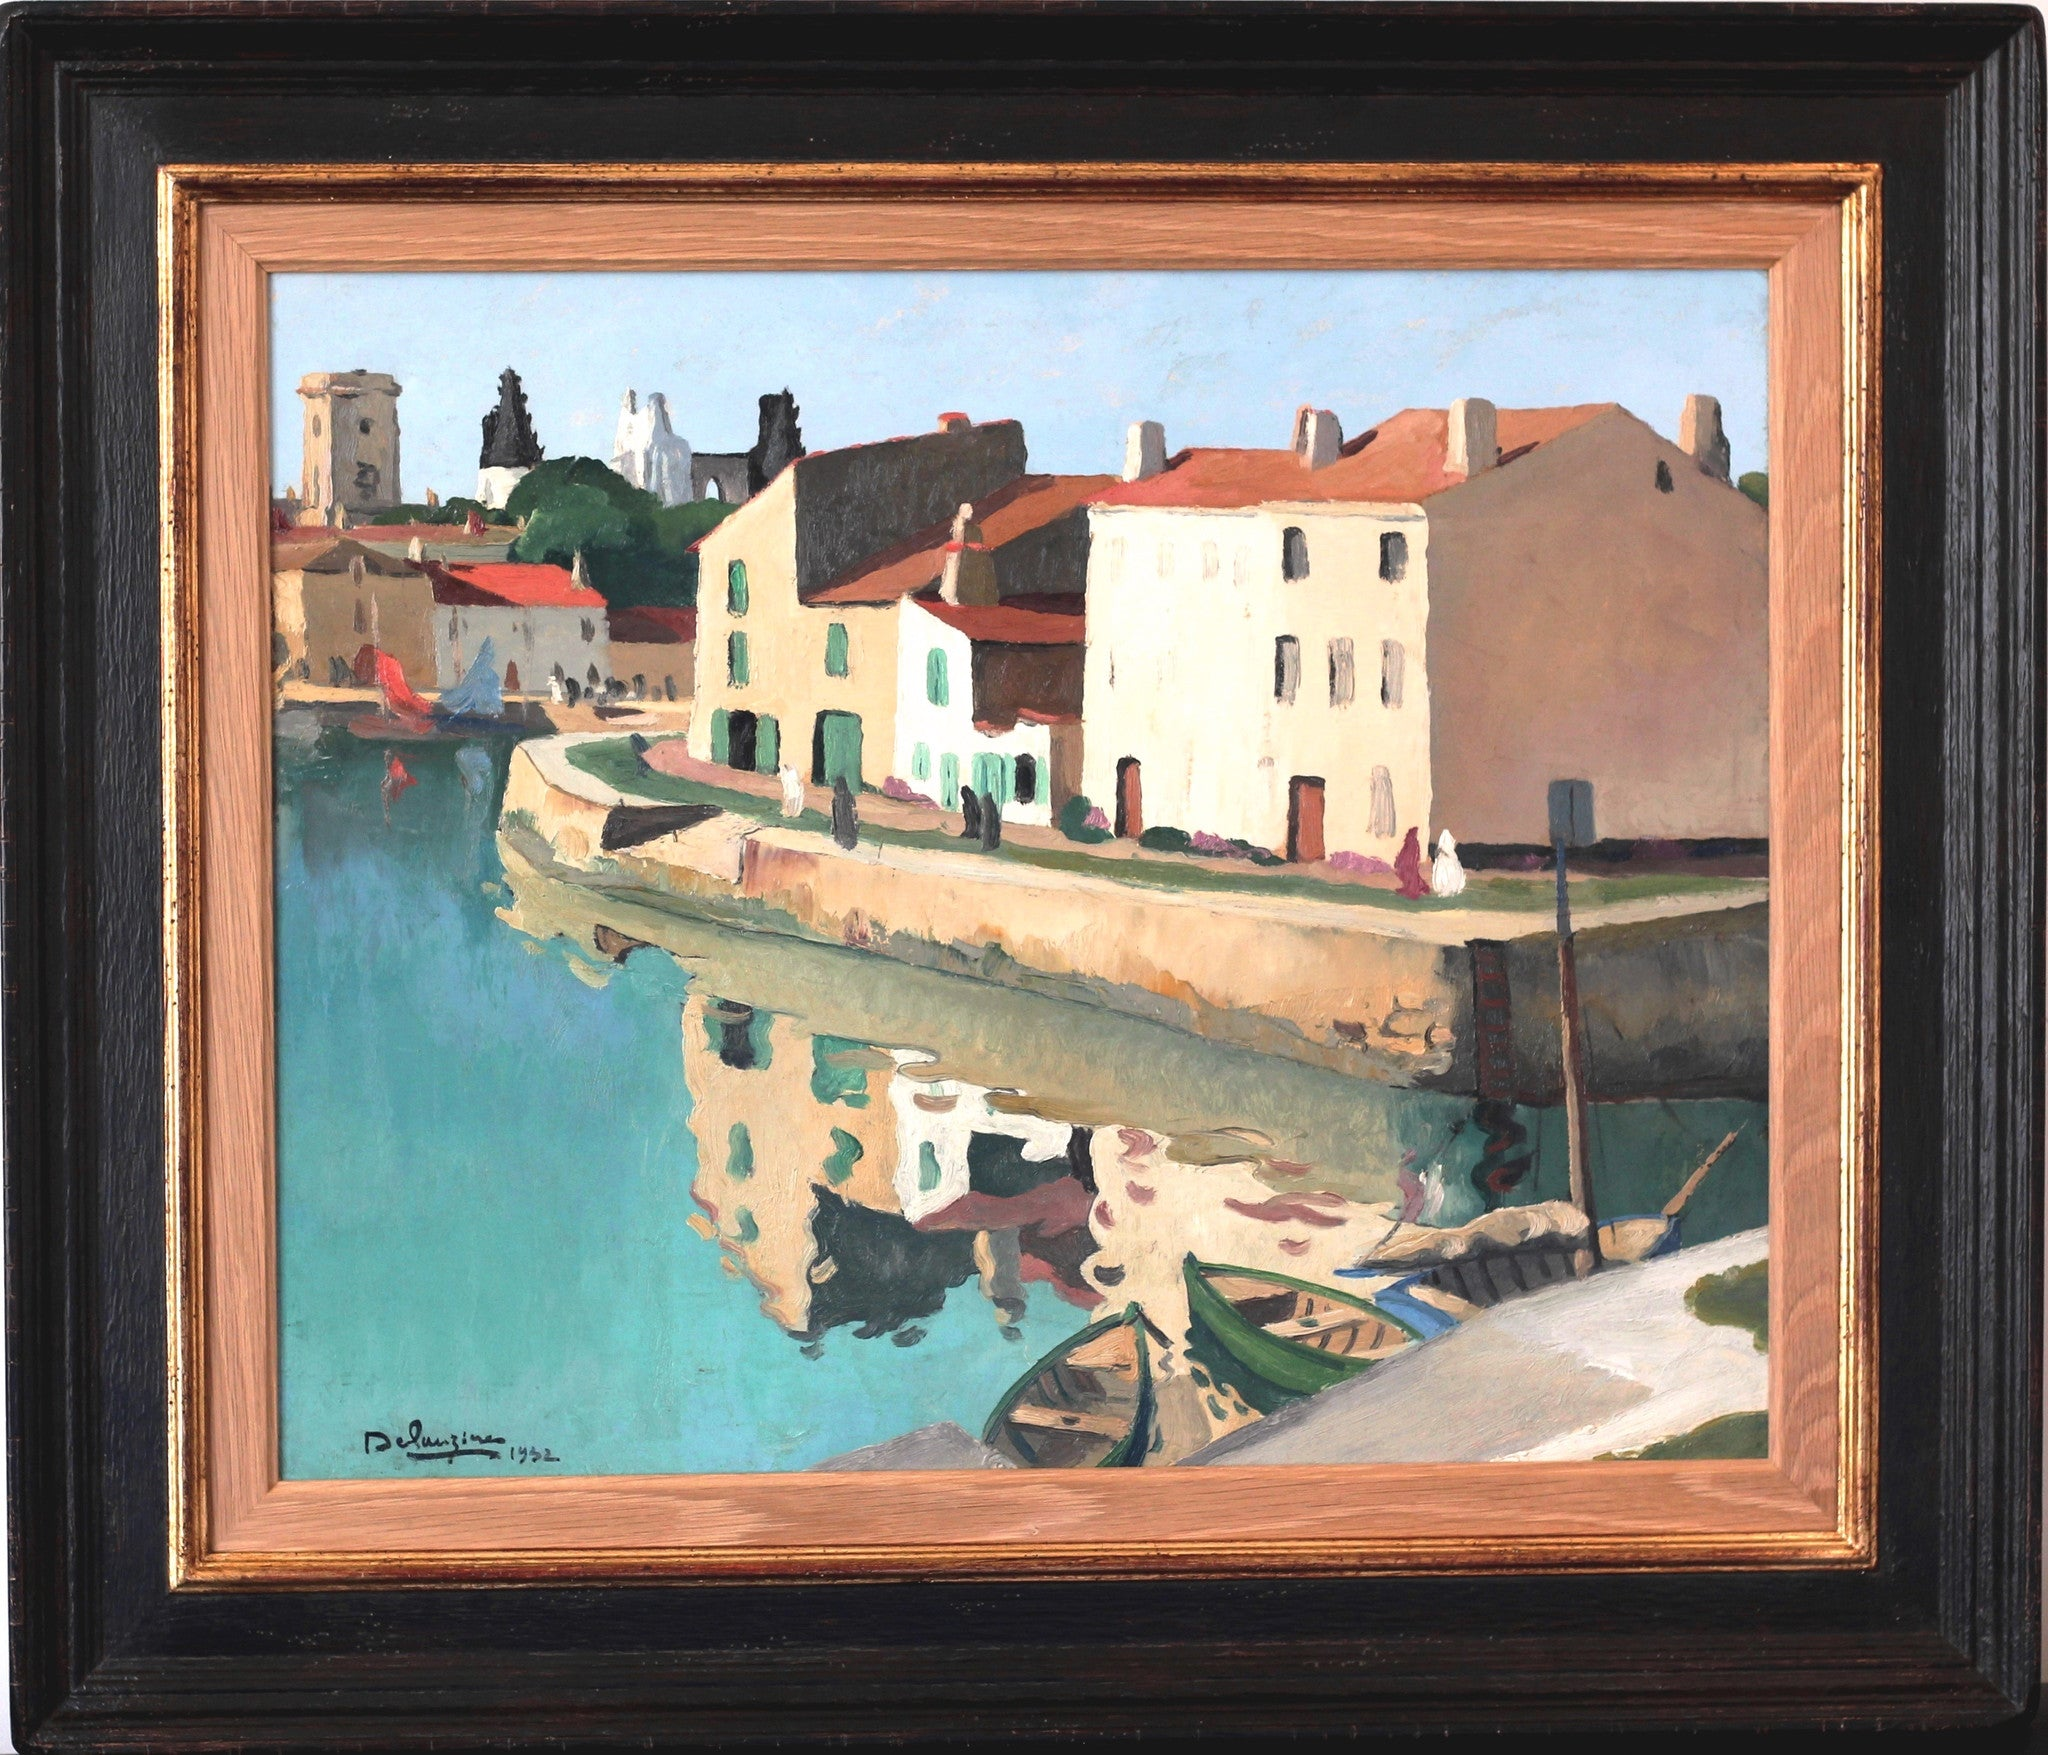 "DELAUZIERES, Andr̩e(French, 1904-1941) ""Harbor of Saint Martin de R̩"" (Ile de R̩, France) ‰ÛÒ 1932"